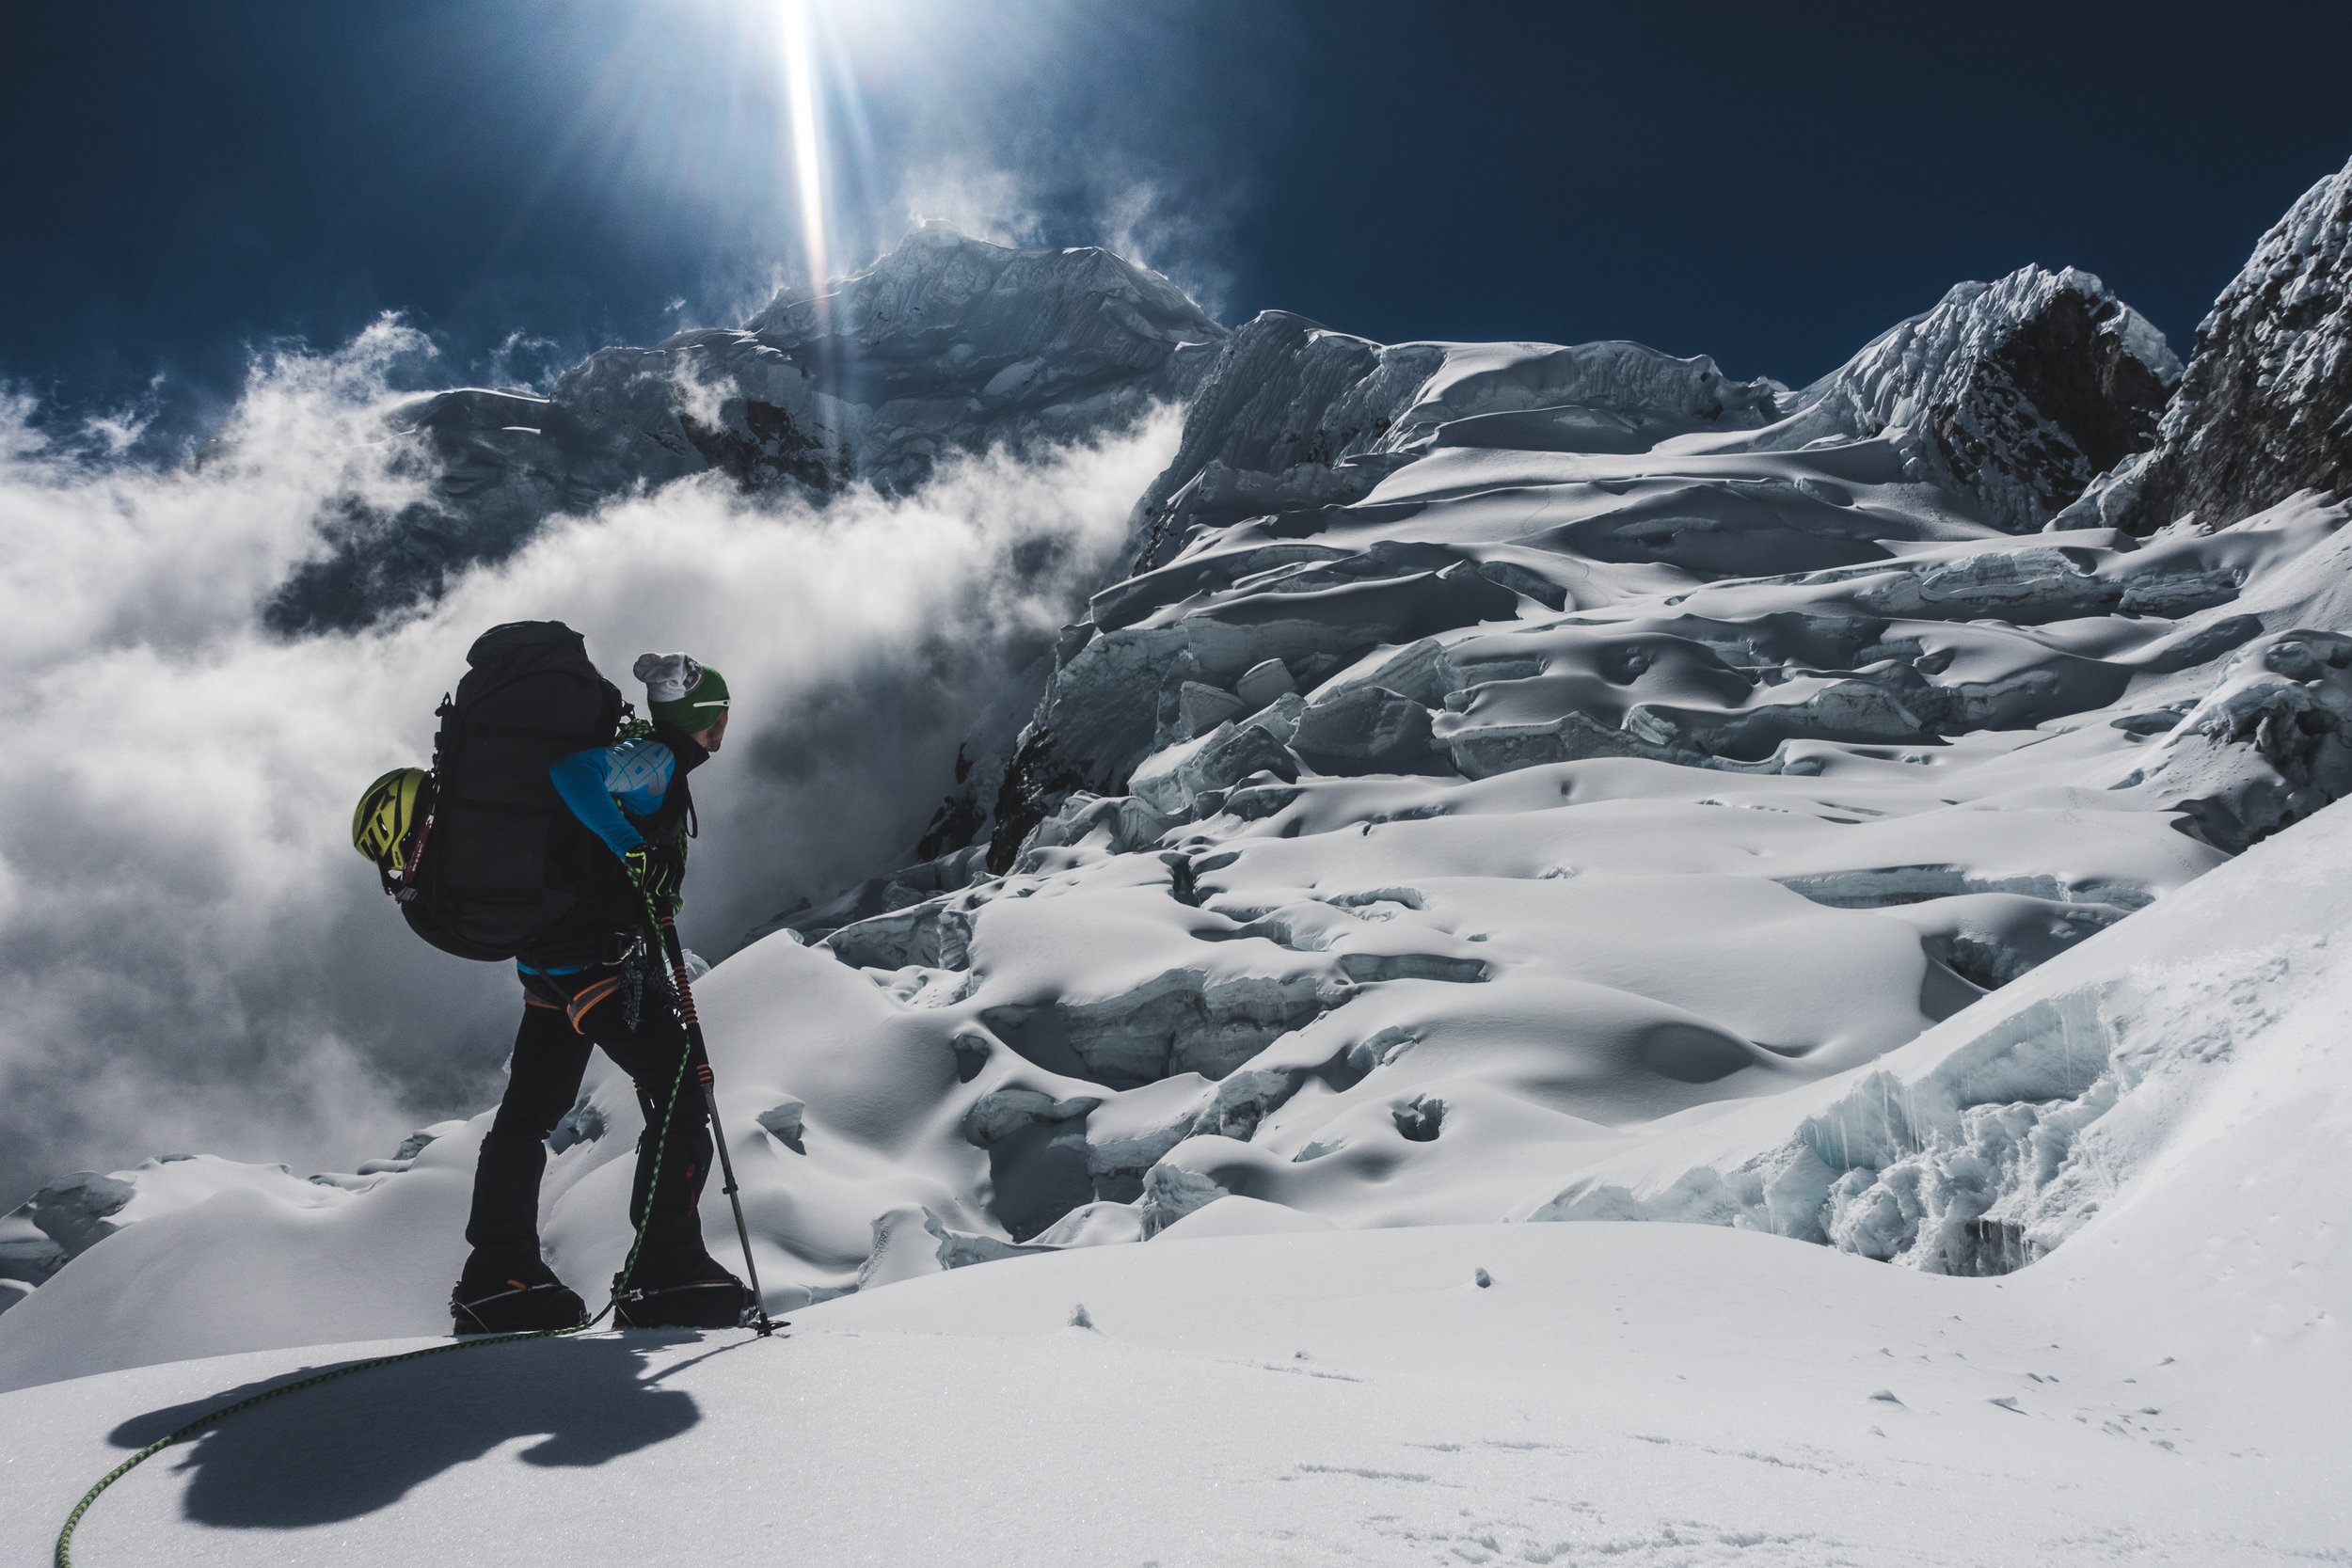 Glacier Ascent on Chopicalqui (6345m), Peru